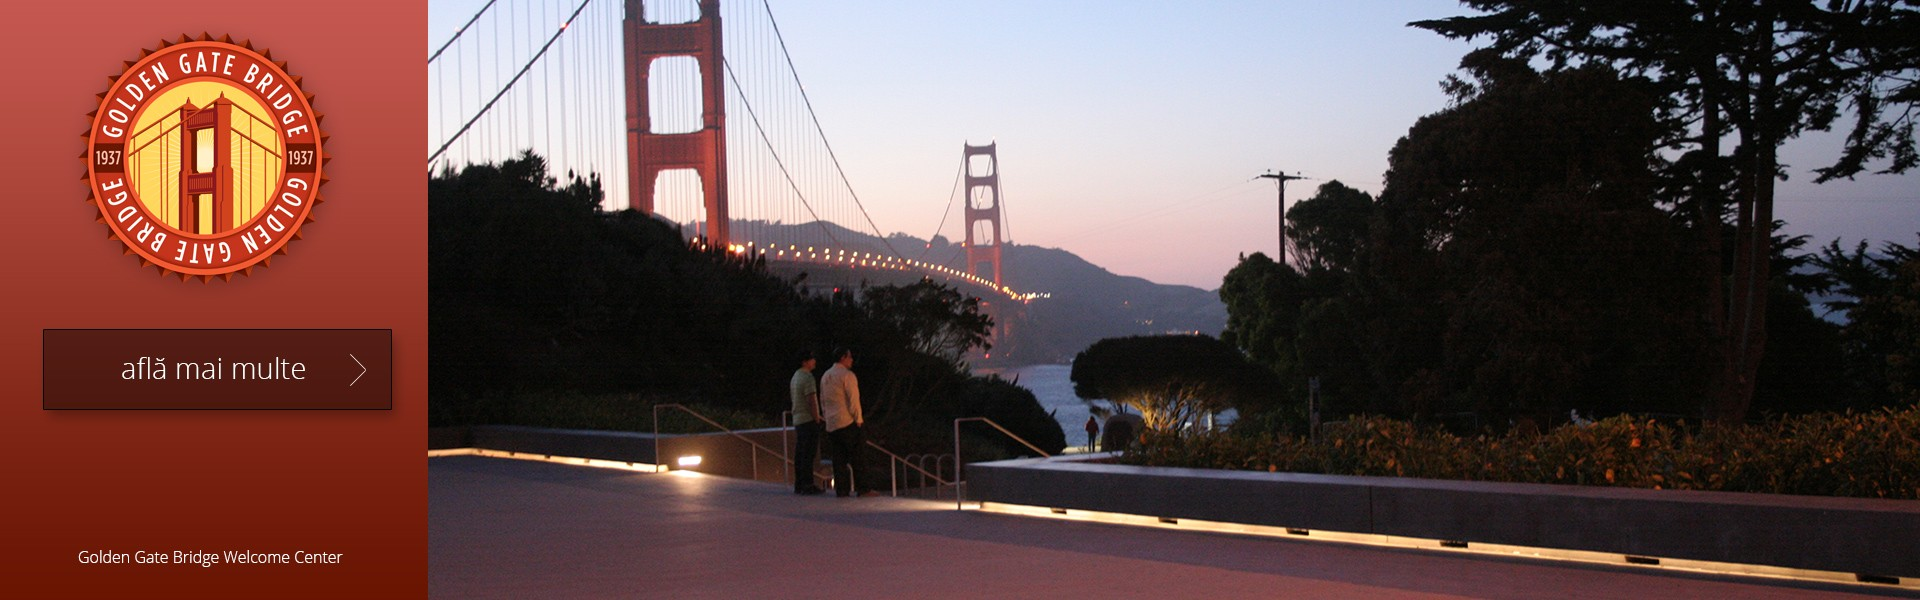 Golden-Gate-Bridge-RU.jpg